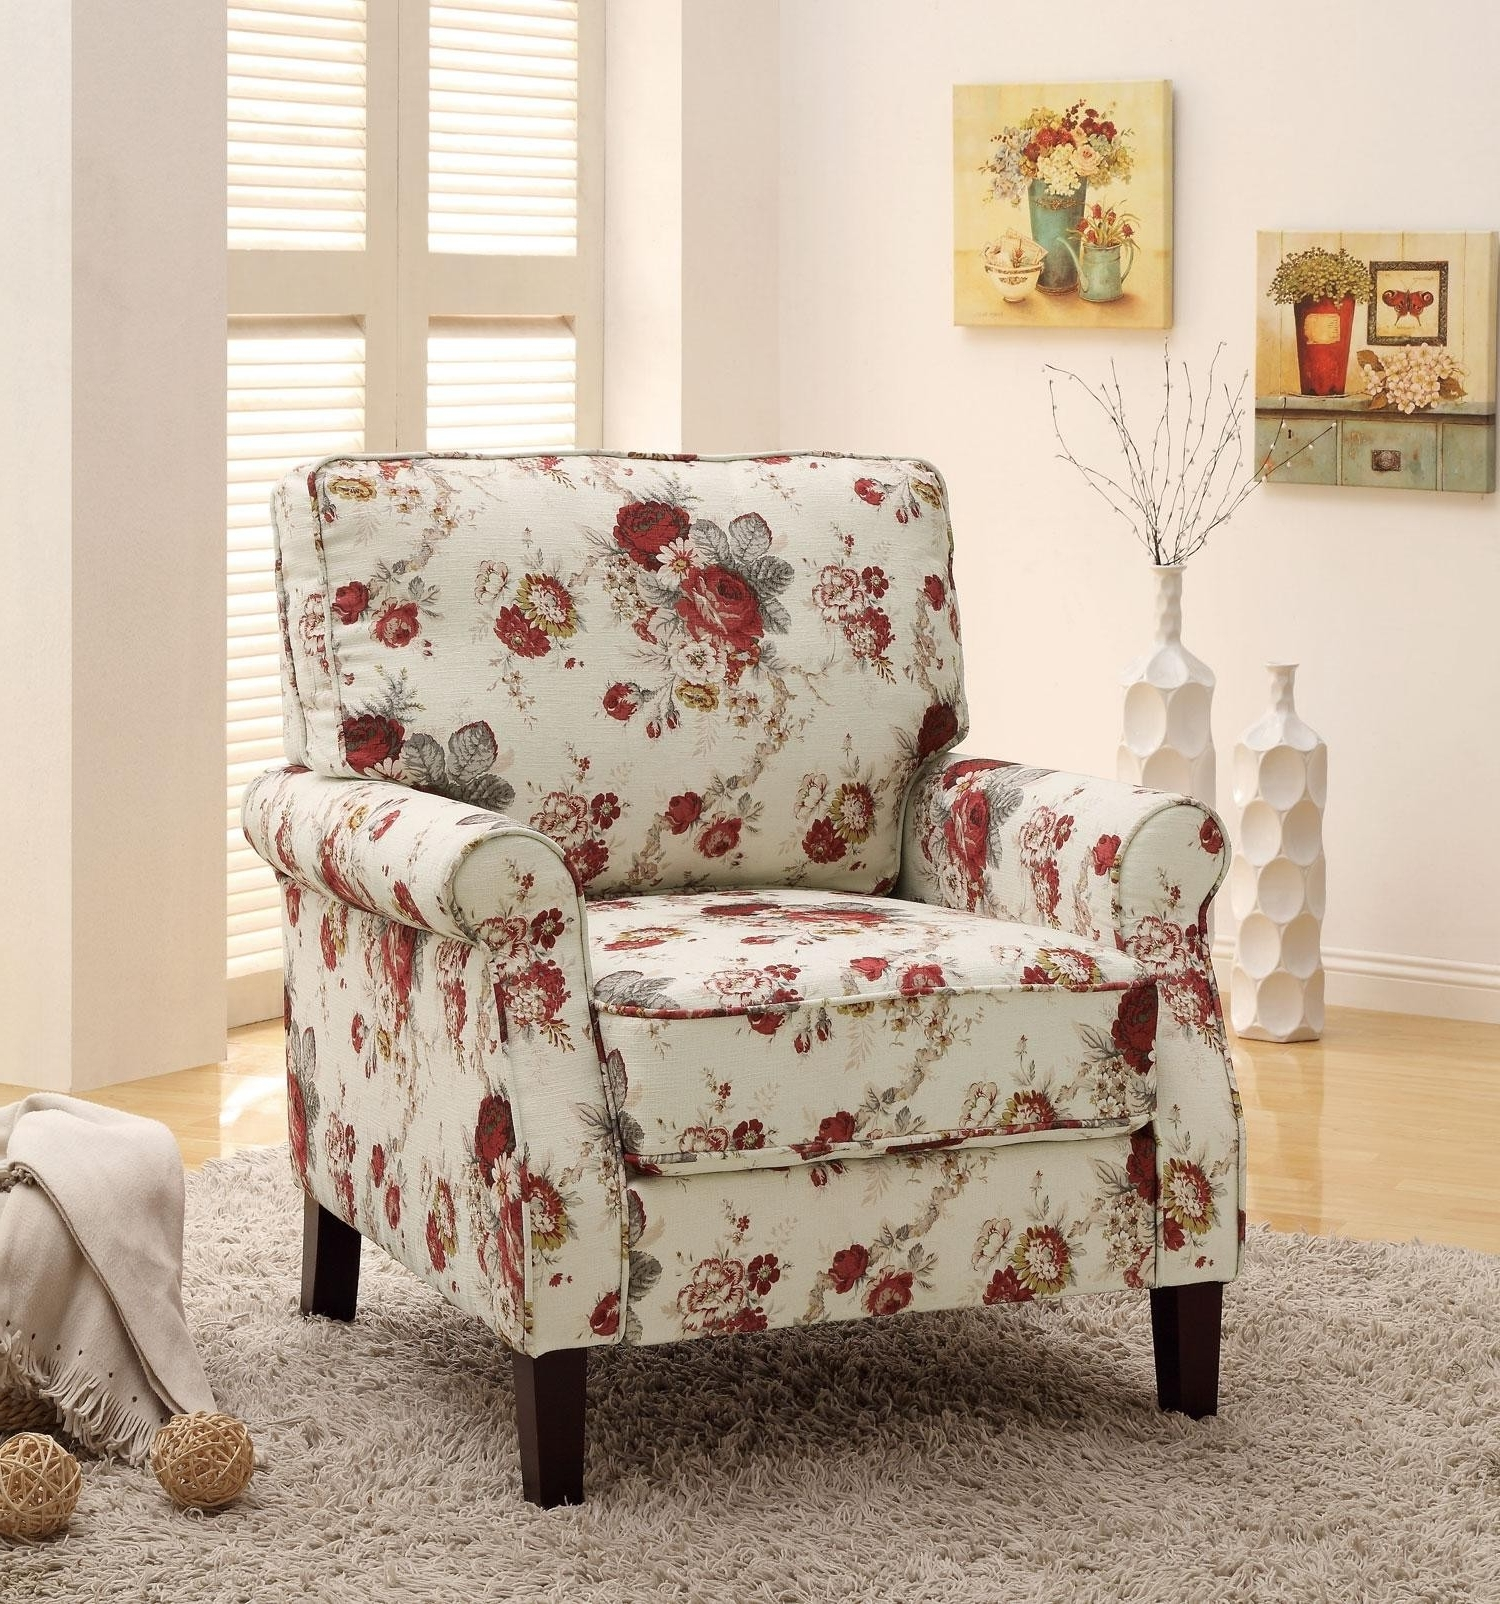 Preferred Floral Sofas And Chairs Inside The Application Of Enchanting Upholstered Chairs For Your Rooms (View 19 of 20)